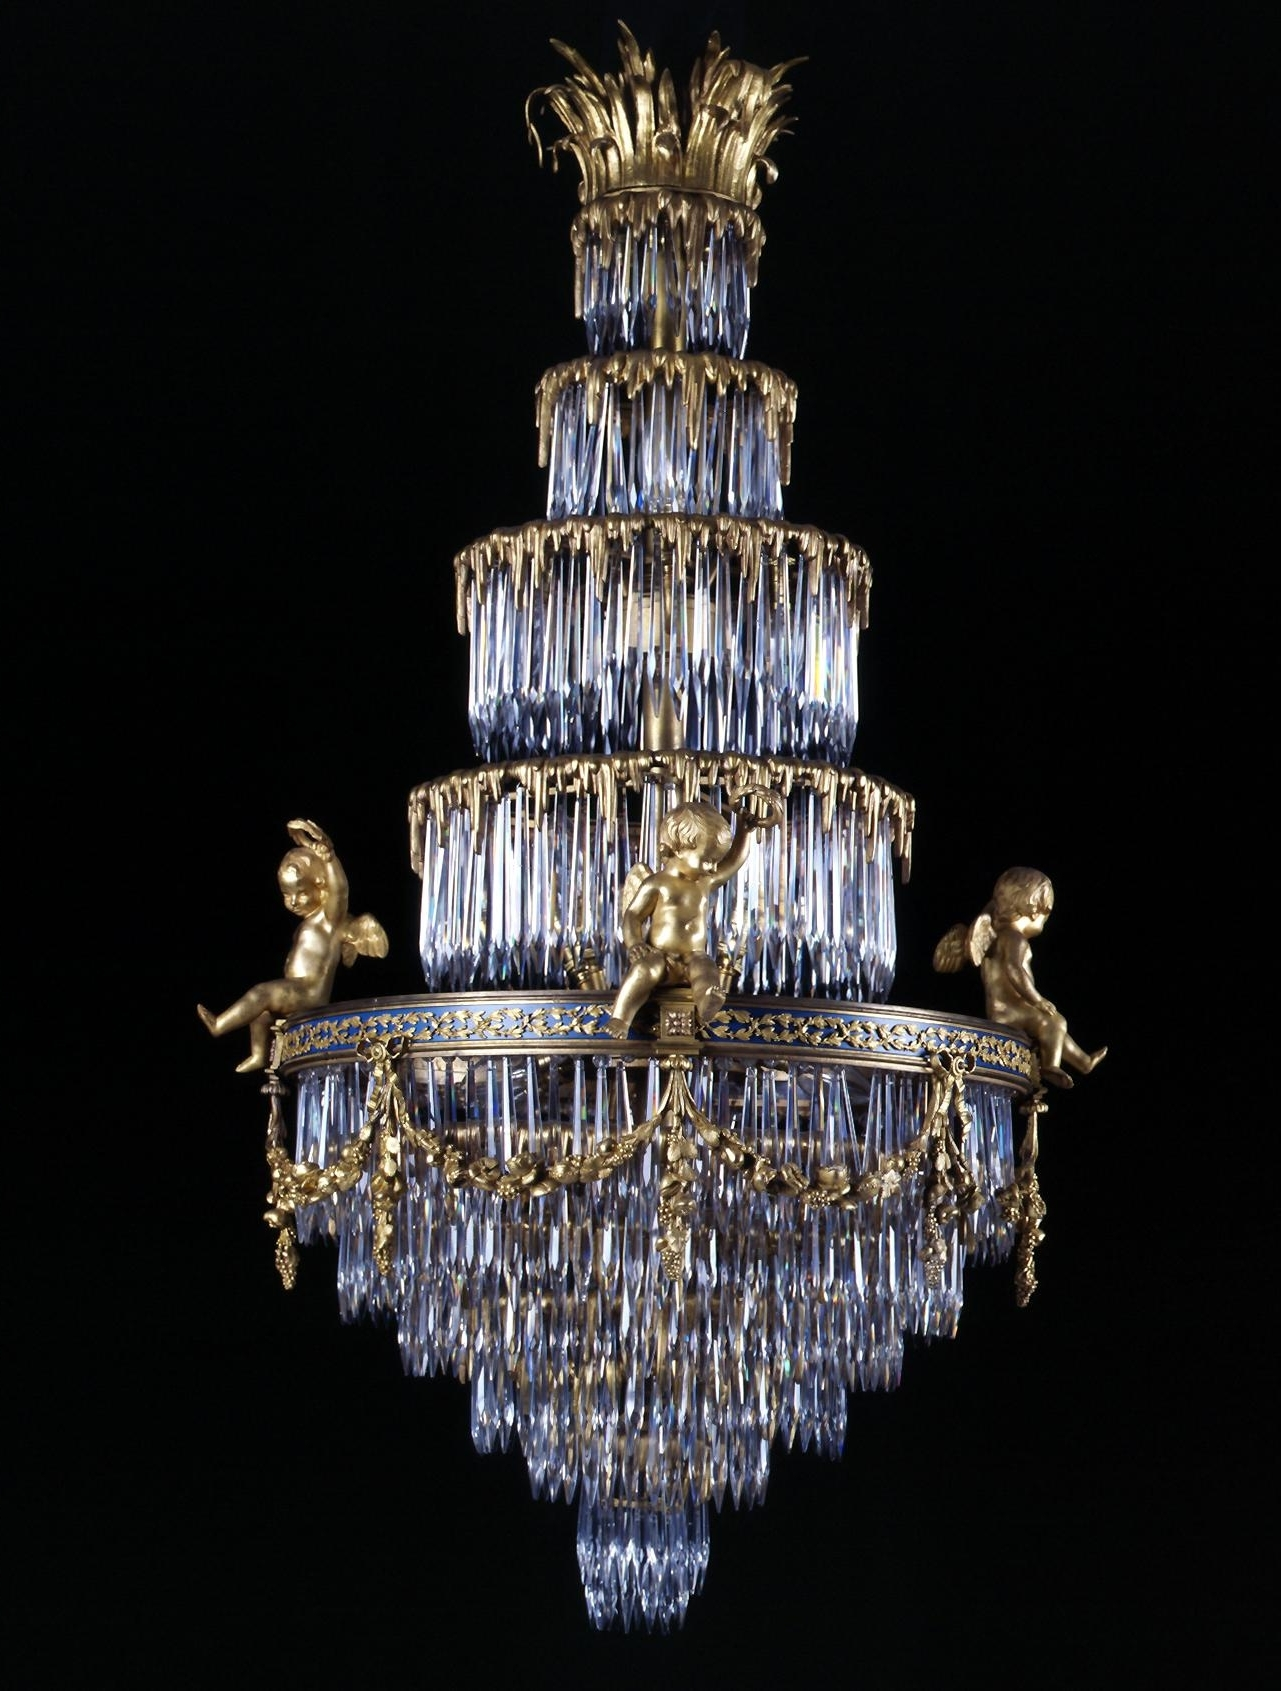 Baccarat A Rare Crystal And Gilt Bronze Waterfall Chandelier French Regarding Well Known Sparkly Chandeliers (View 1 of 15)